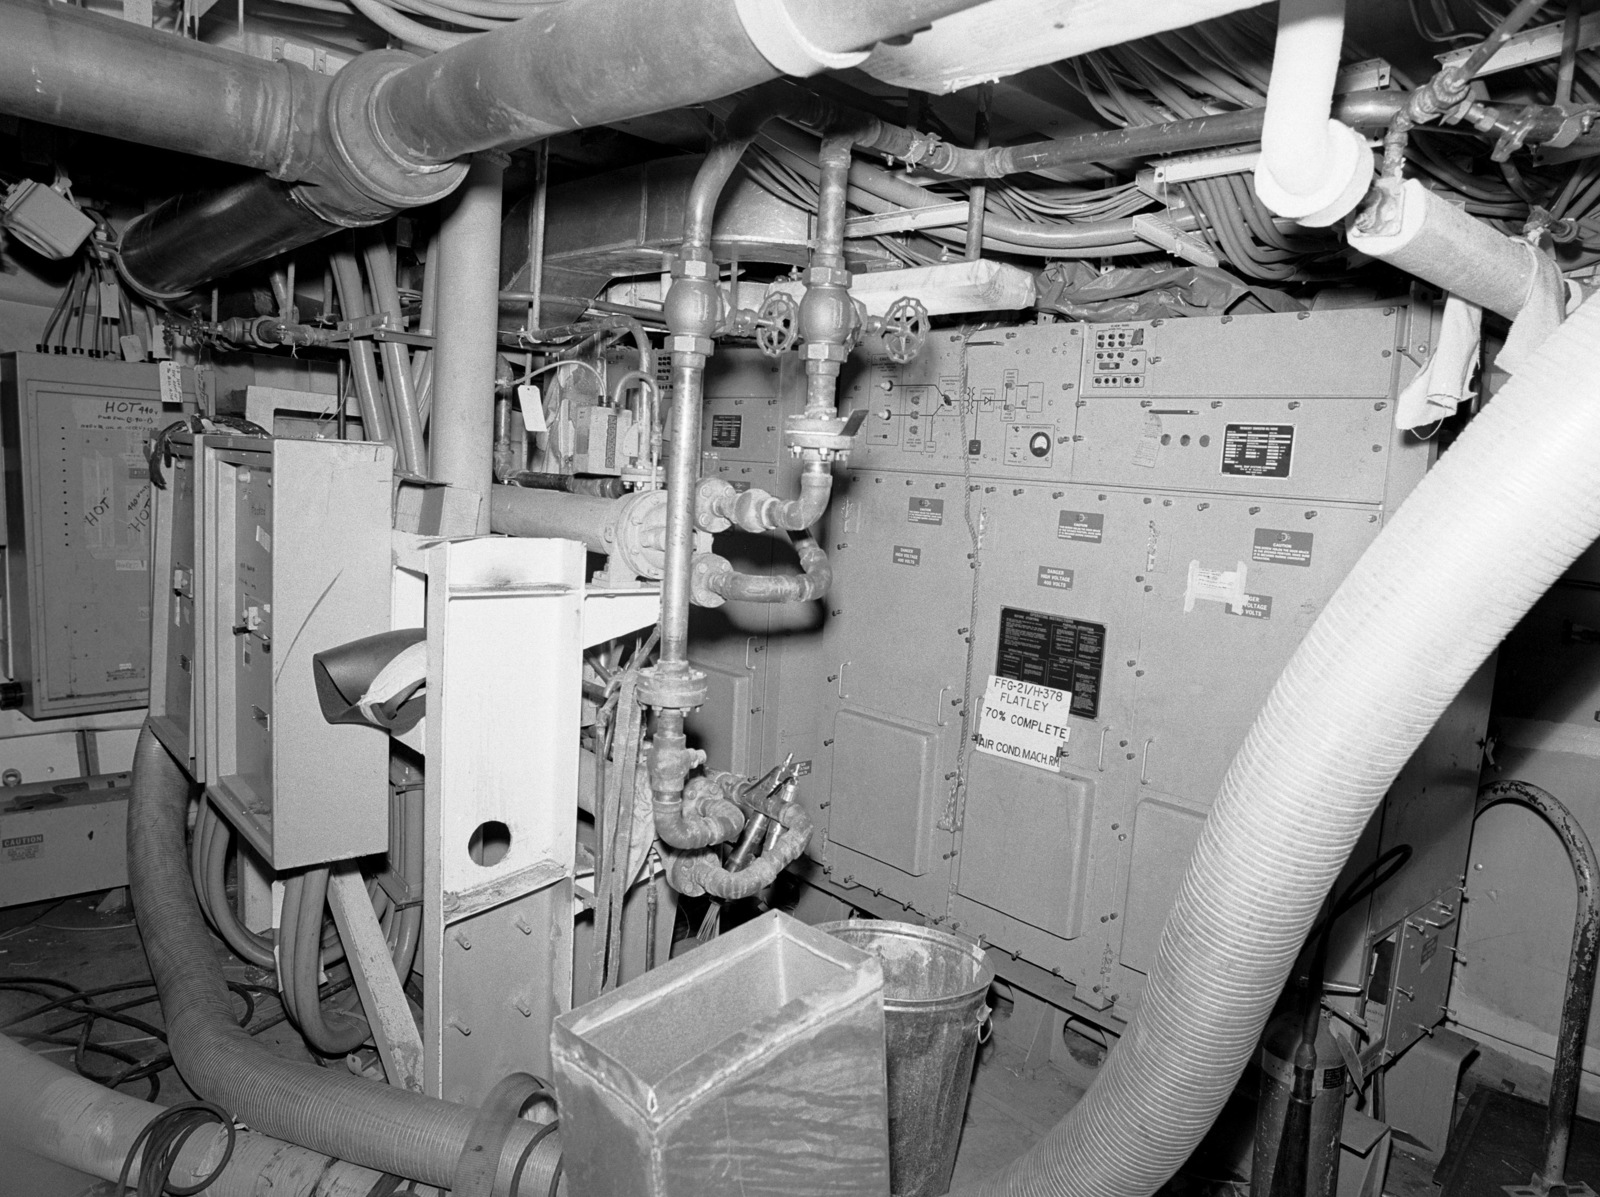 Air conditioning machinery room aboard the Oliver Hazard Perry class guided missile frigate USS FLATLEY (FFG 21) at 70 percent completion